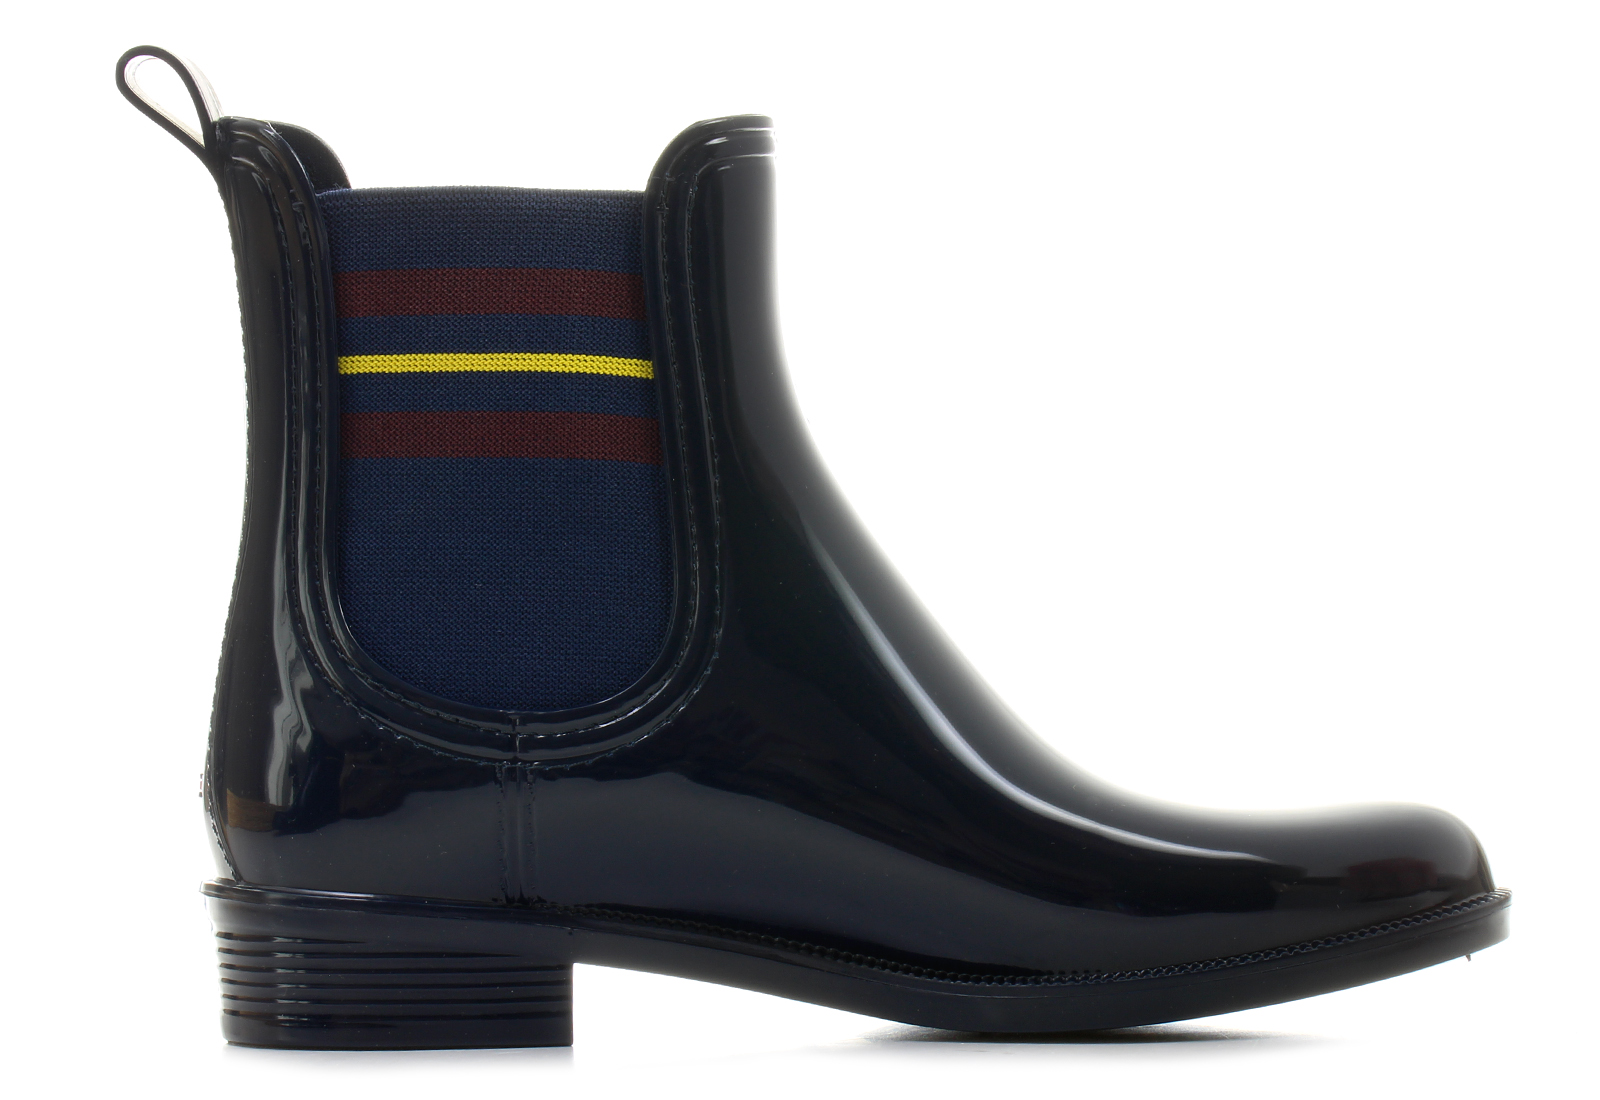 tommy hilfiger boots odette 7r 17s 0519 406 online. Black Bedroom Furniture Sets. Home Design Ideas